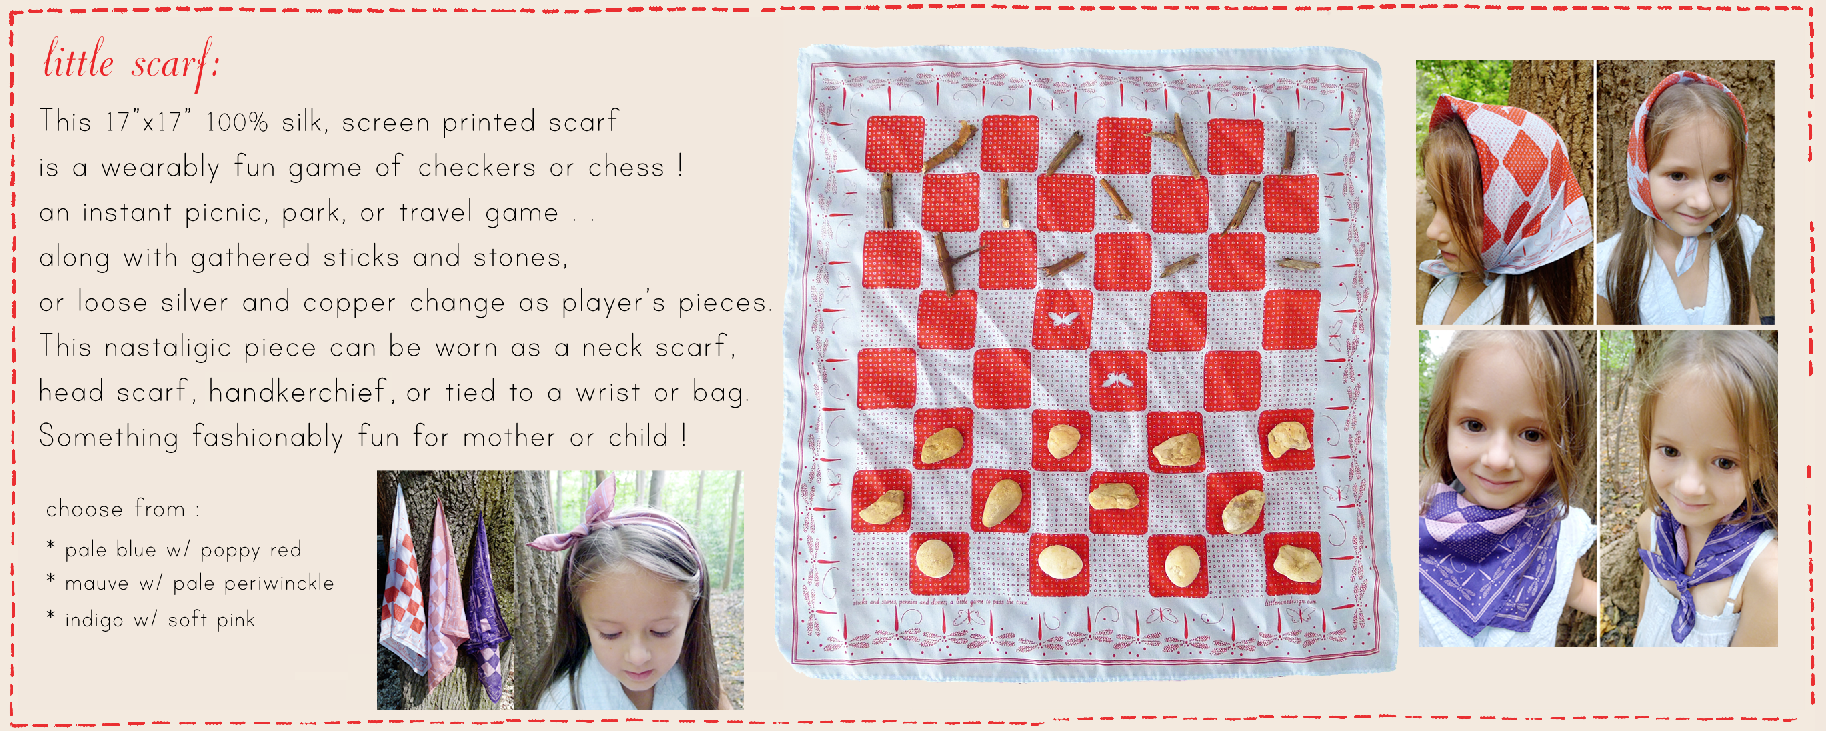 This little silk scarf is a screen printed wearably fun portable game of checkers or chess !   Available at :  LITTLENAMEDESIGN.com